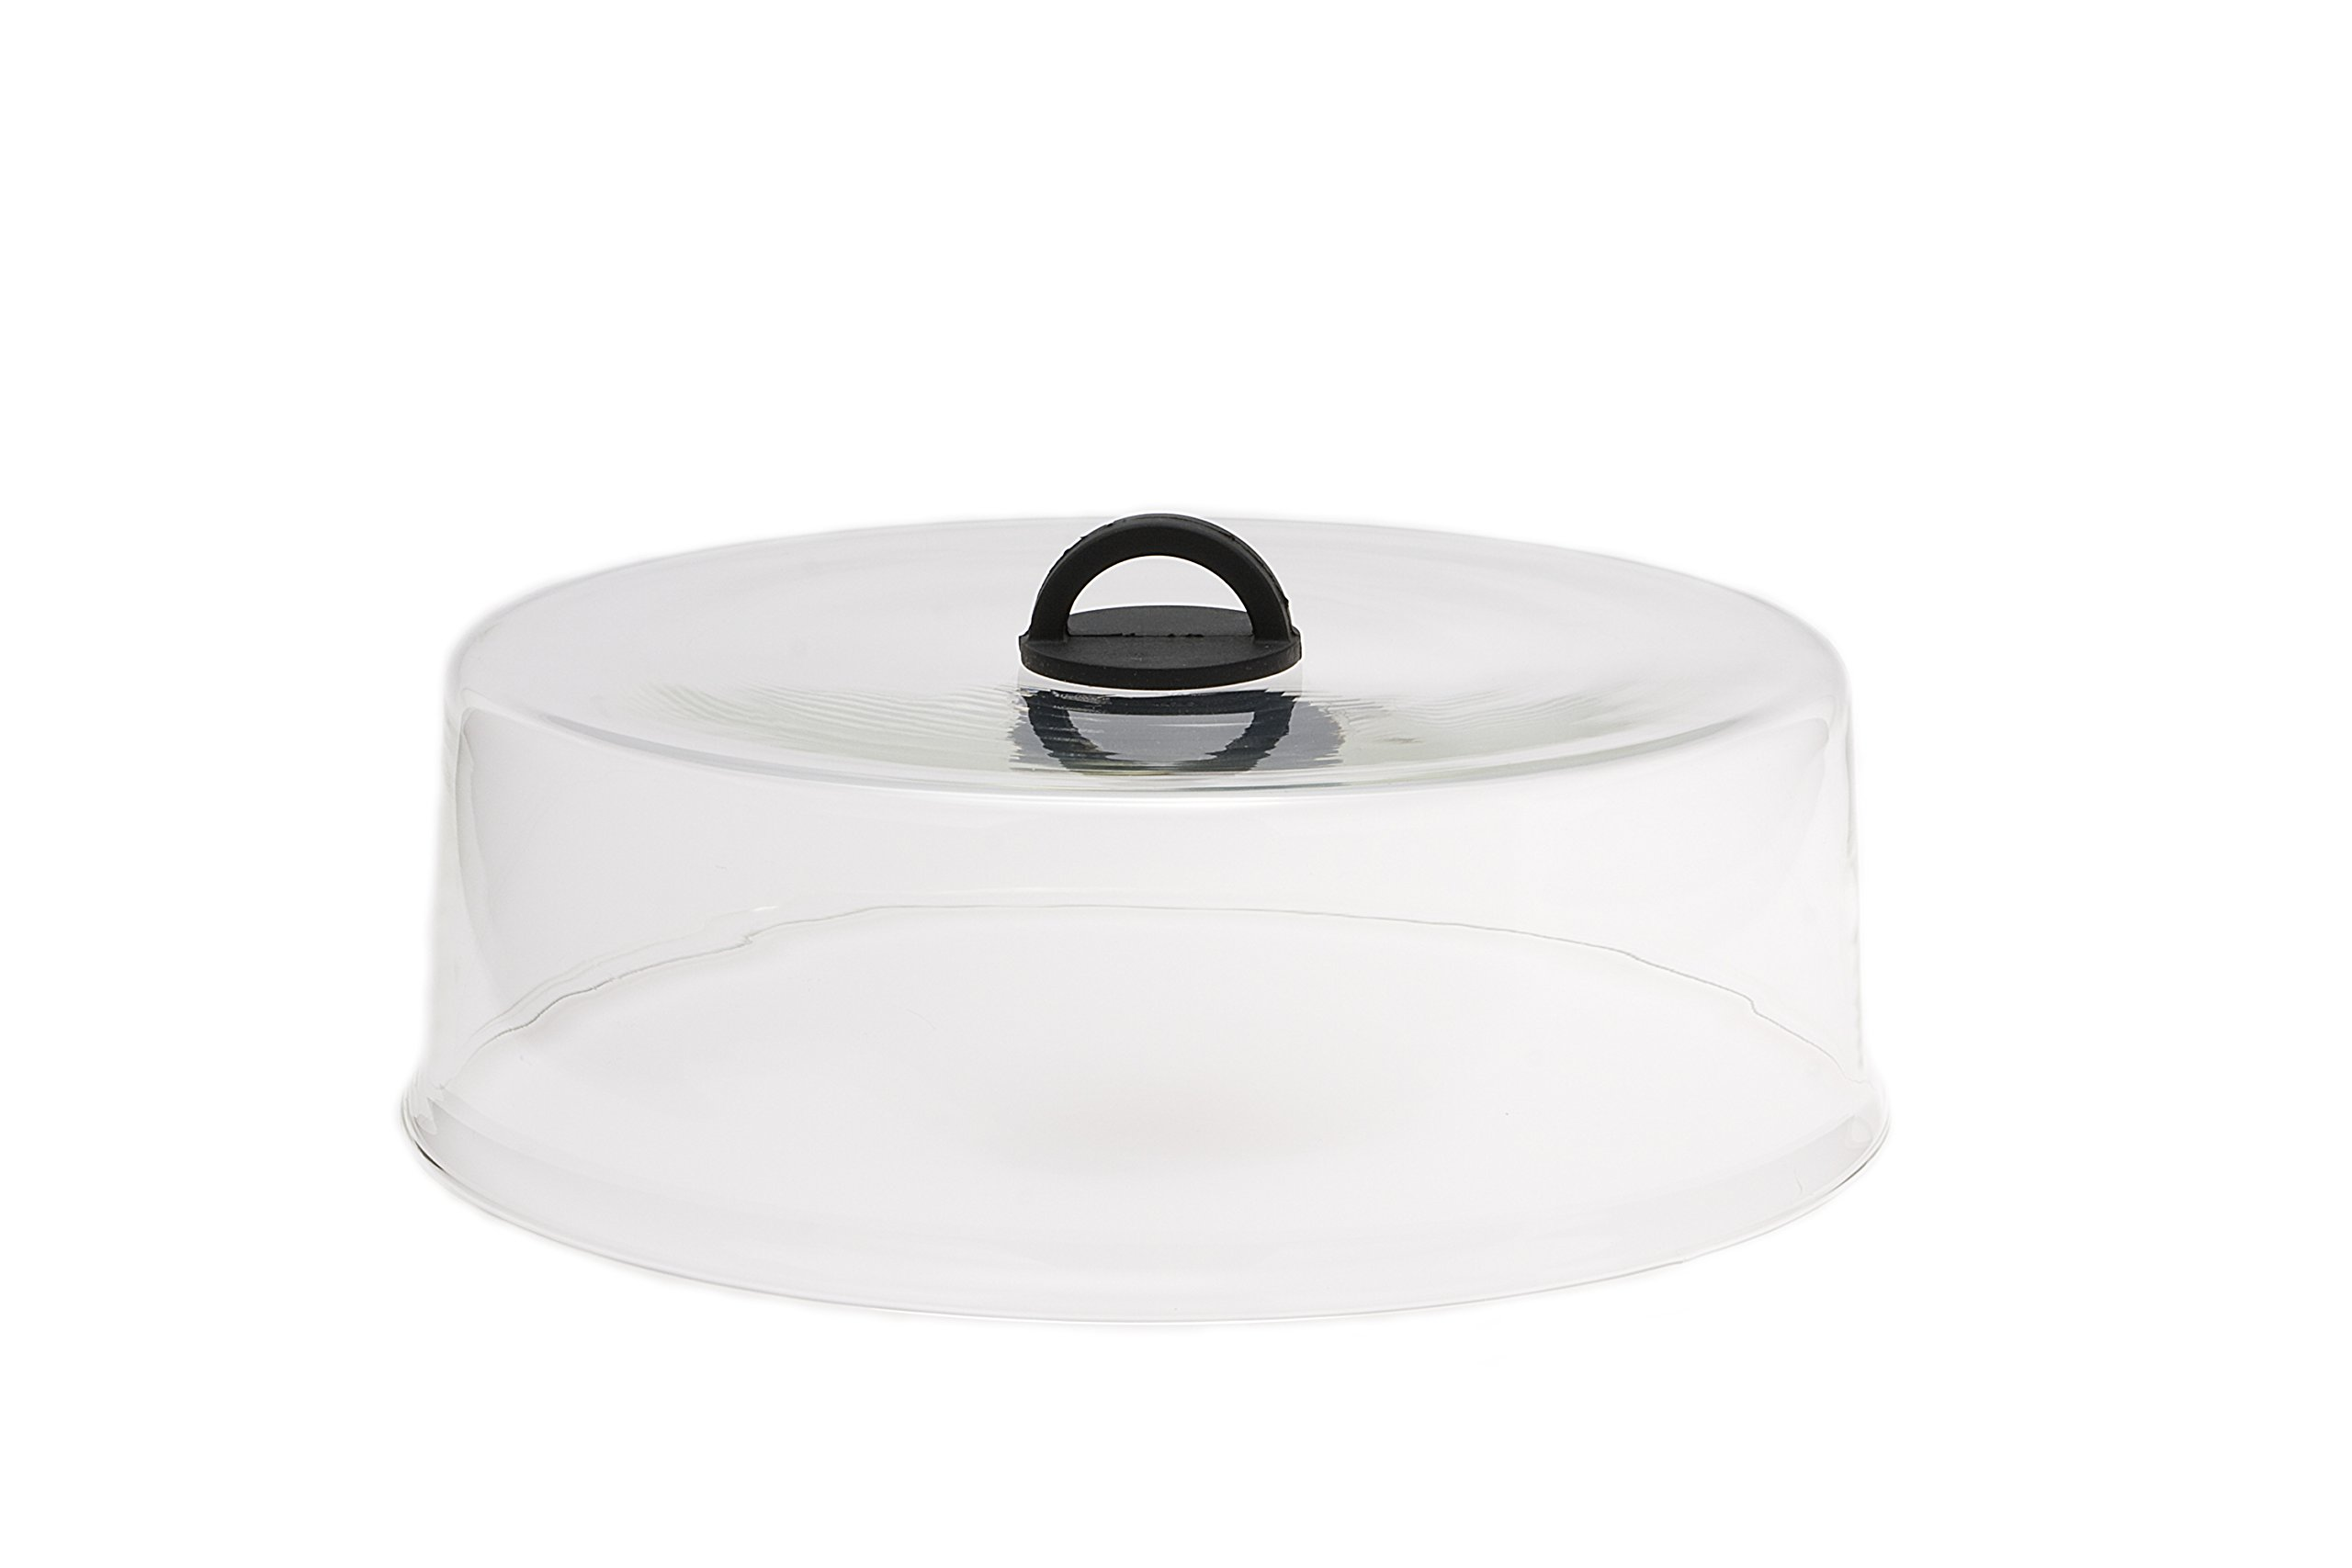 Microwaveable Tall Glass Plate Cover with Black Easy-Grip Silicone Handle by Catamount Glassware